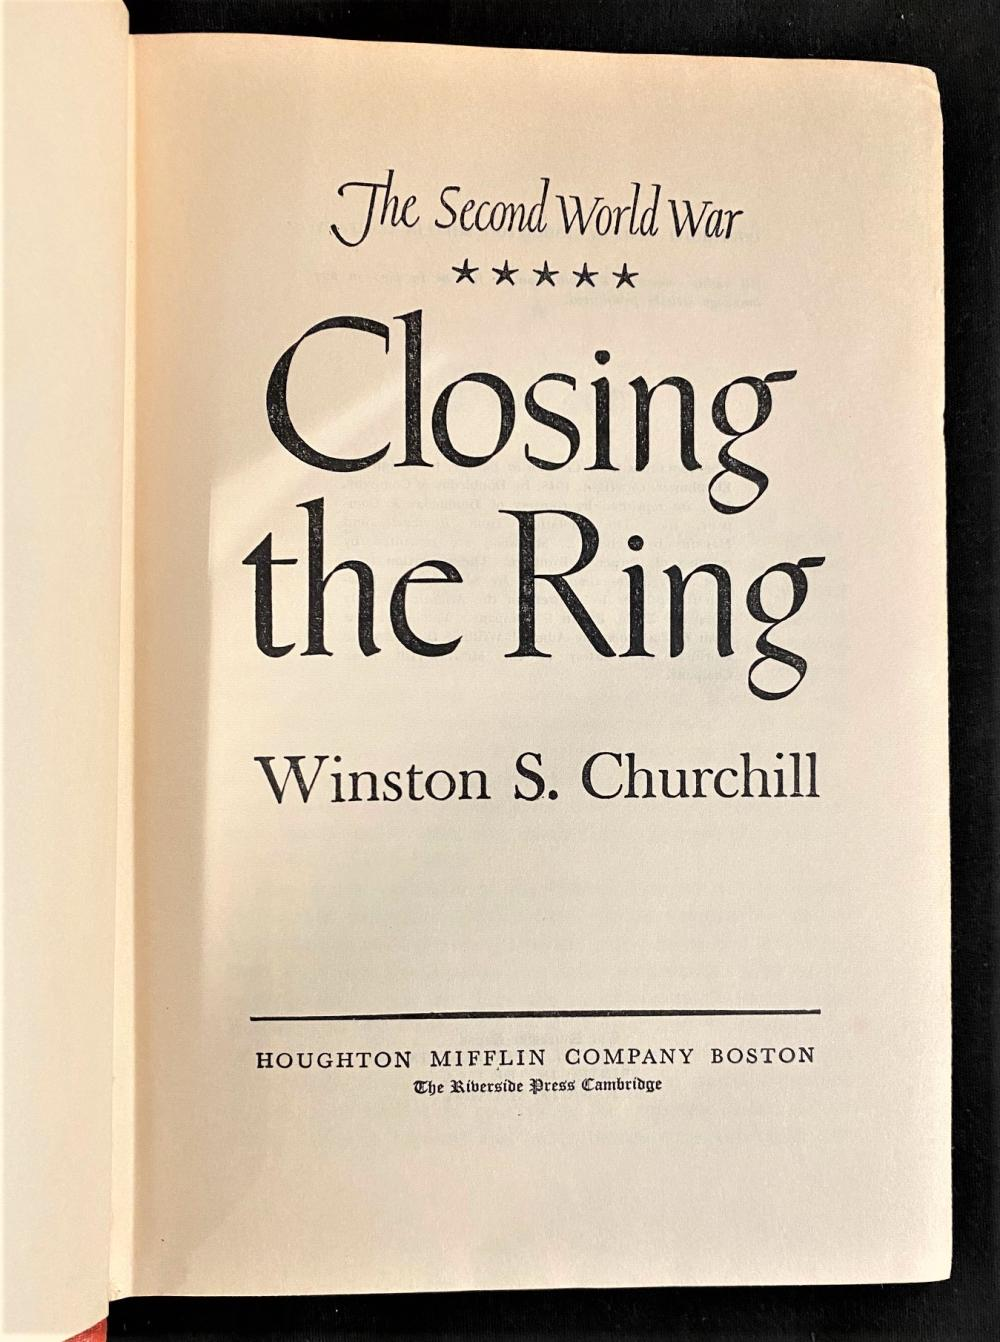 WINSTON CHURCHILL COLLECTION - THE SECOND WORLD WAR AND THE HISTORY OF ENGLISH SPEAKING PEOPLES. 10 VOLUMES, 1948-1965